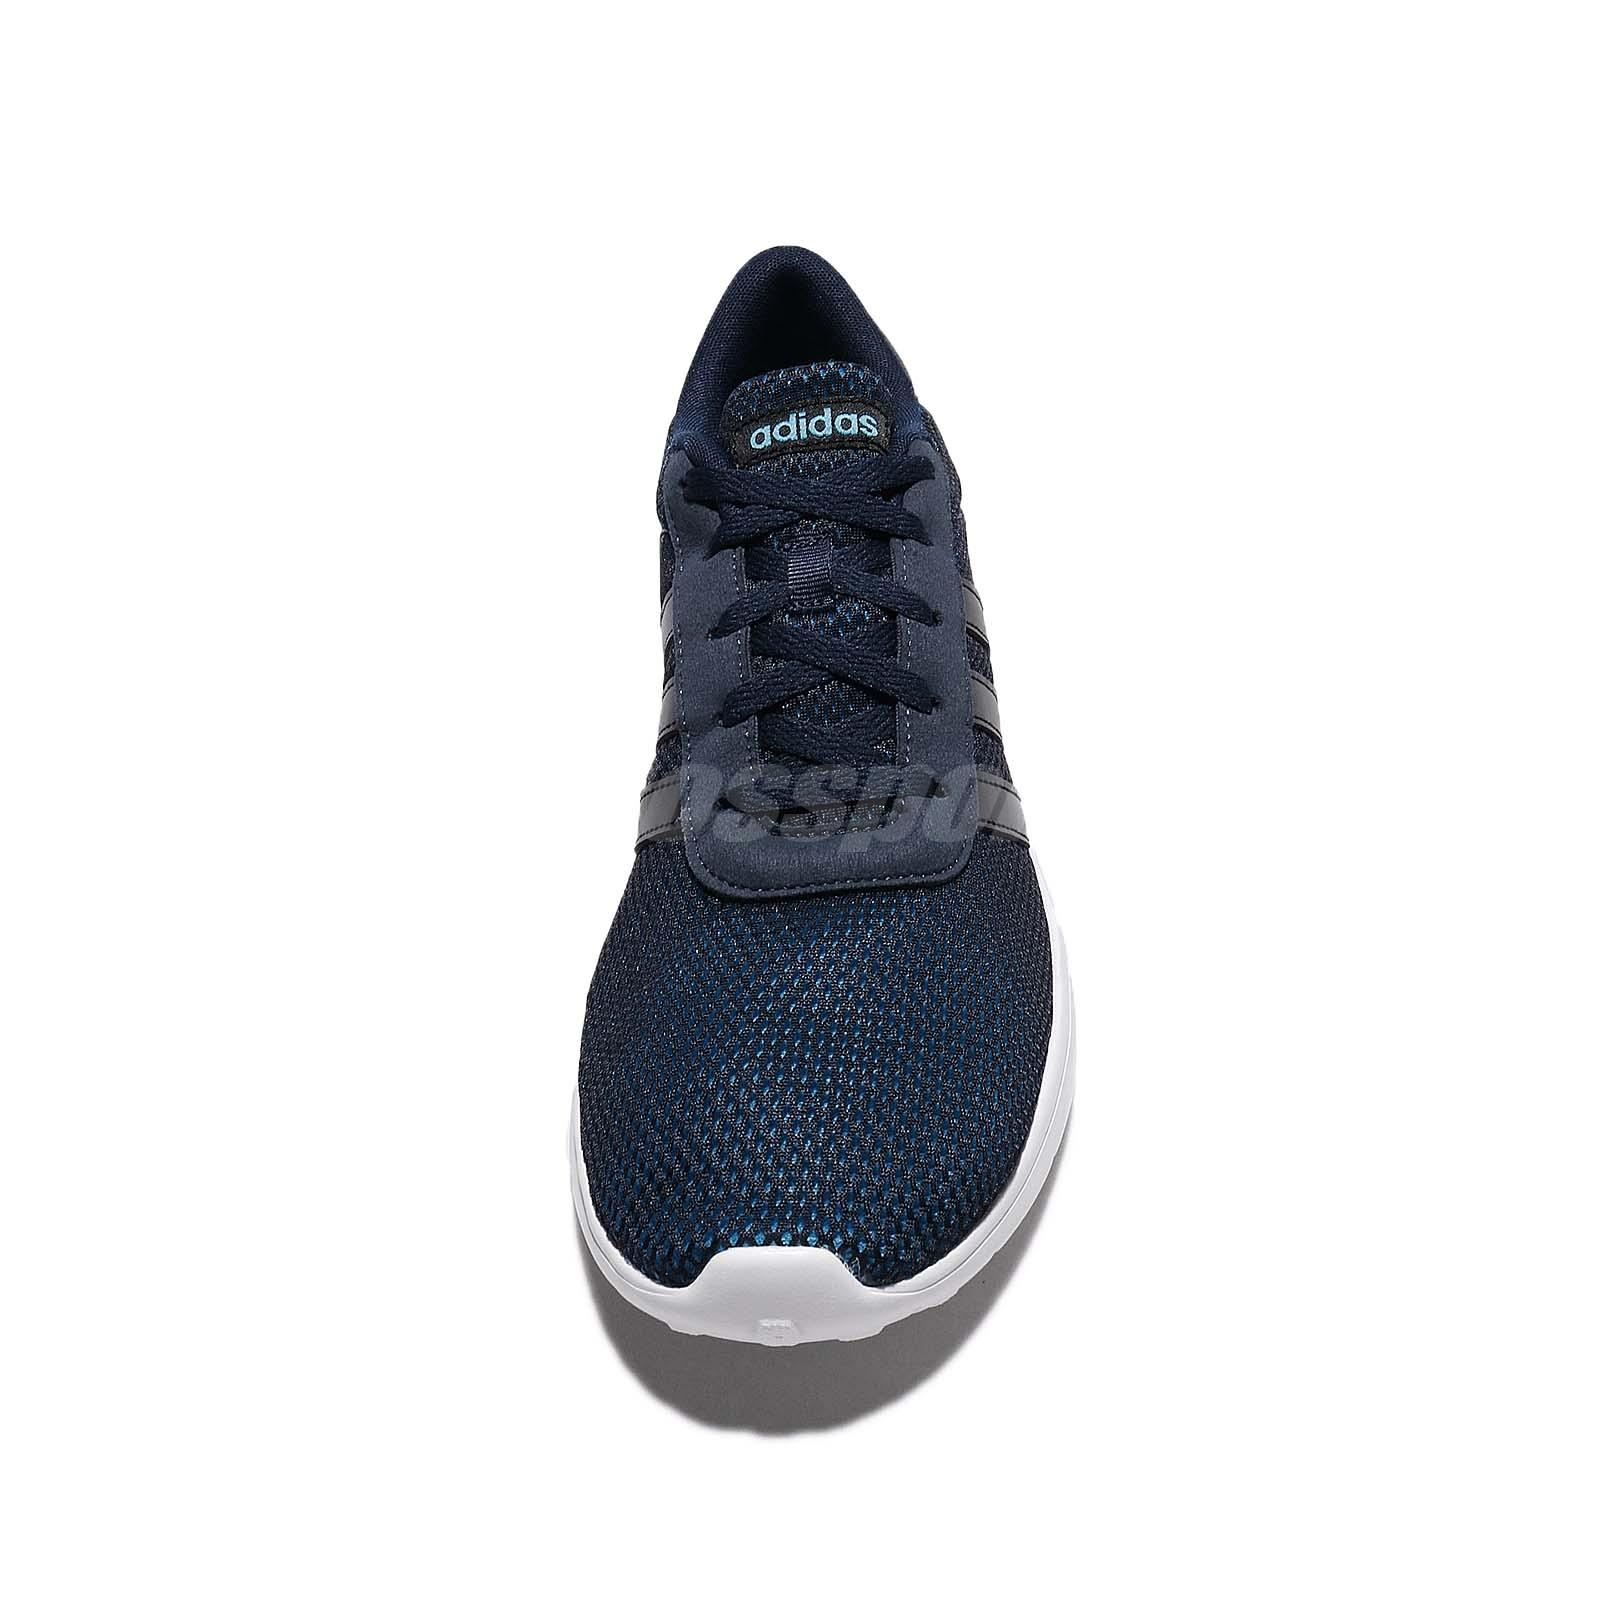 adidas neo men's lite racer black silver and solblu running shoes nz